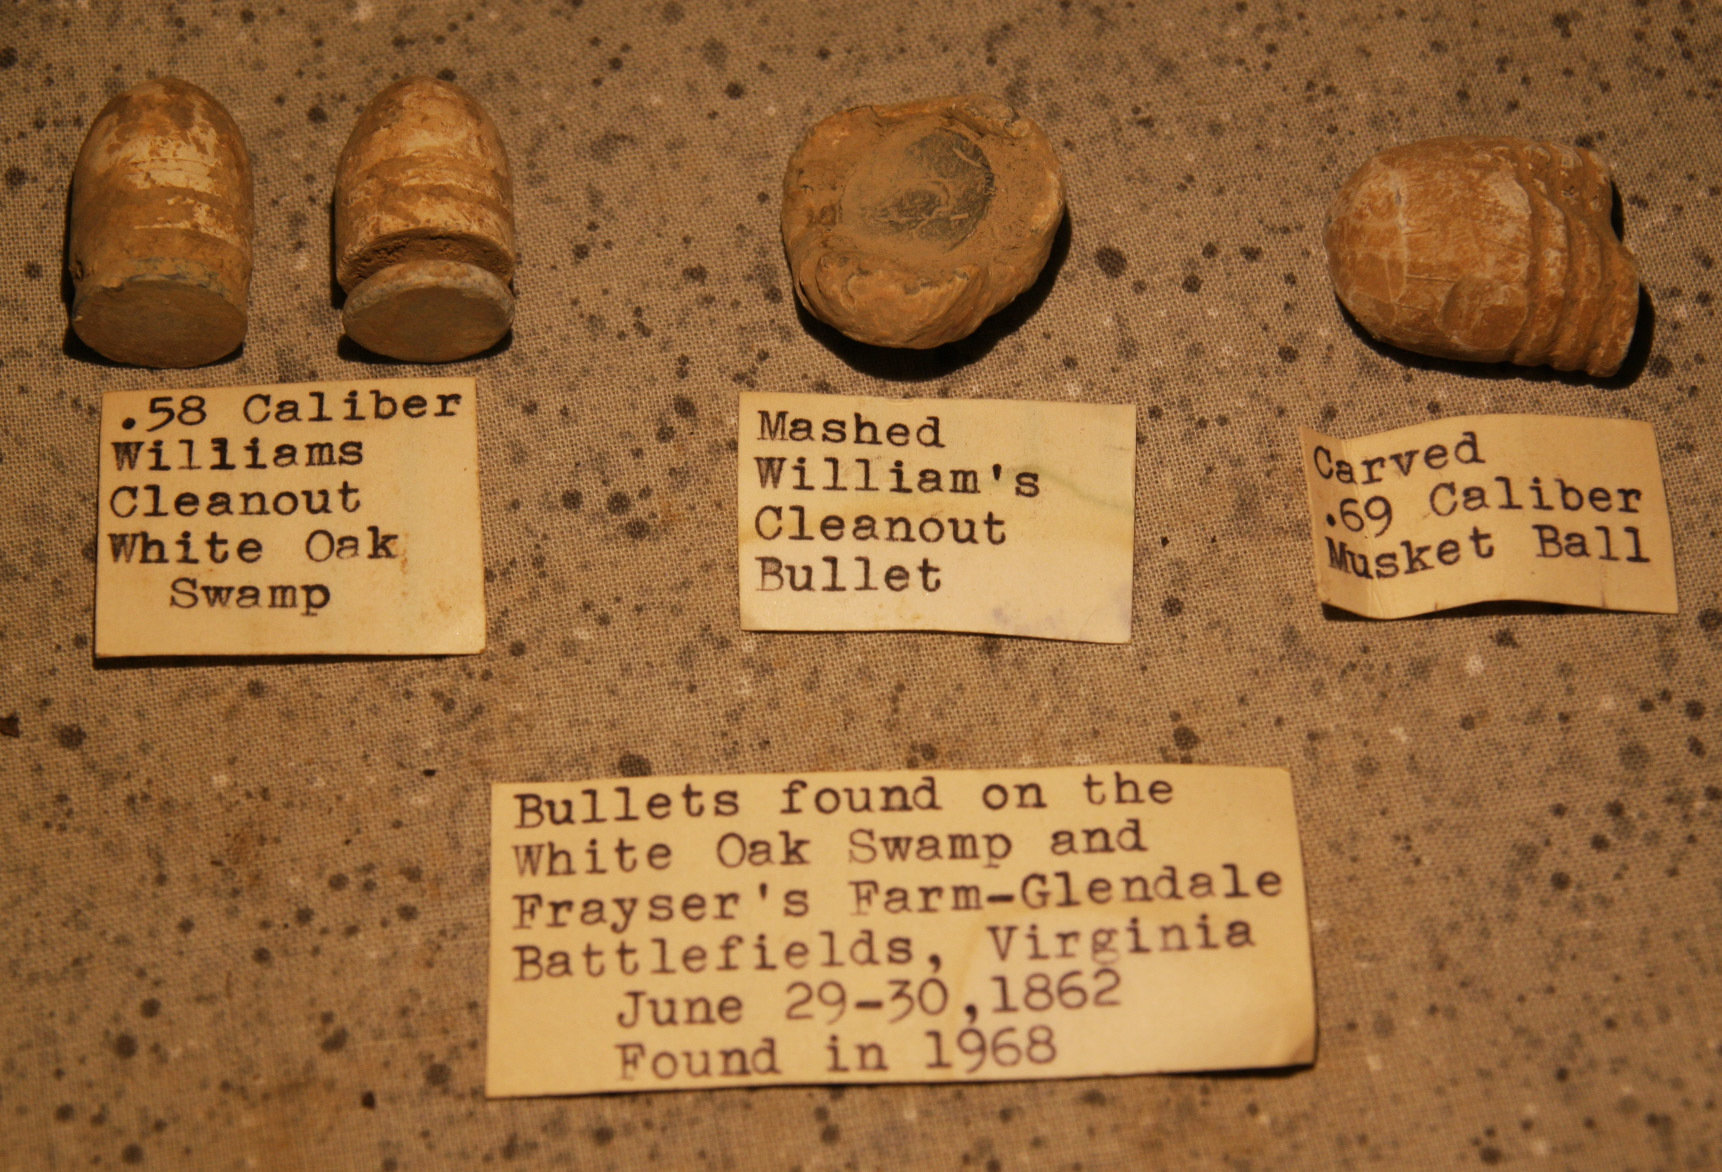 JUST ADDED ON 6/6 - THE BATTLE OF GLENDALE / WHITE OAK SWAMP - Bullets with Original Collection Labels RG-GWS01